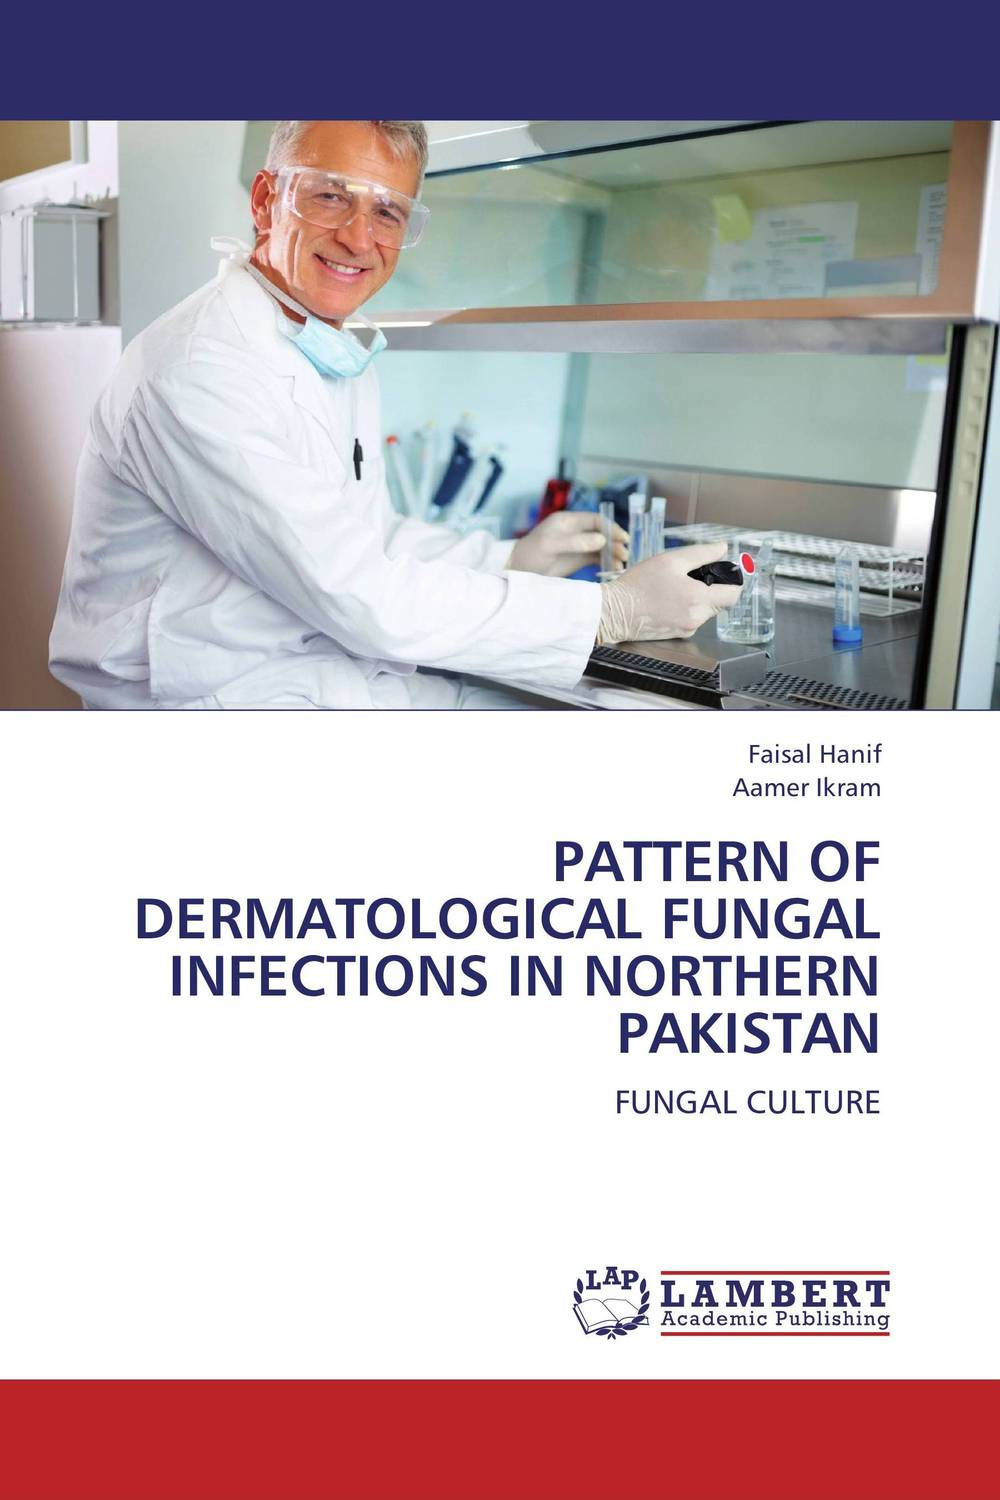 PATTERN OF DERMATOLOGICAL FUNGAL INFECTIONS IN NORTHERN PAKISTAN amel dawod kamel gudia and shadia abd el kader hassan assessment of common types of vaginal infections among women